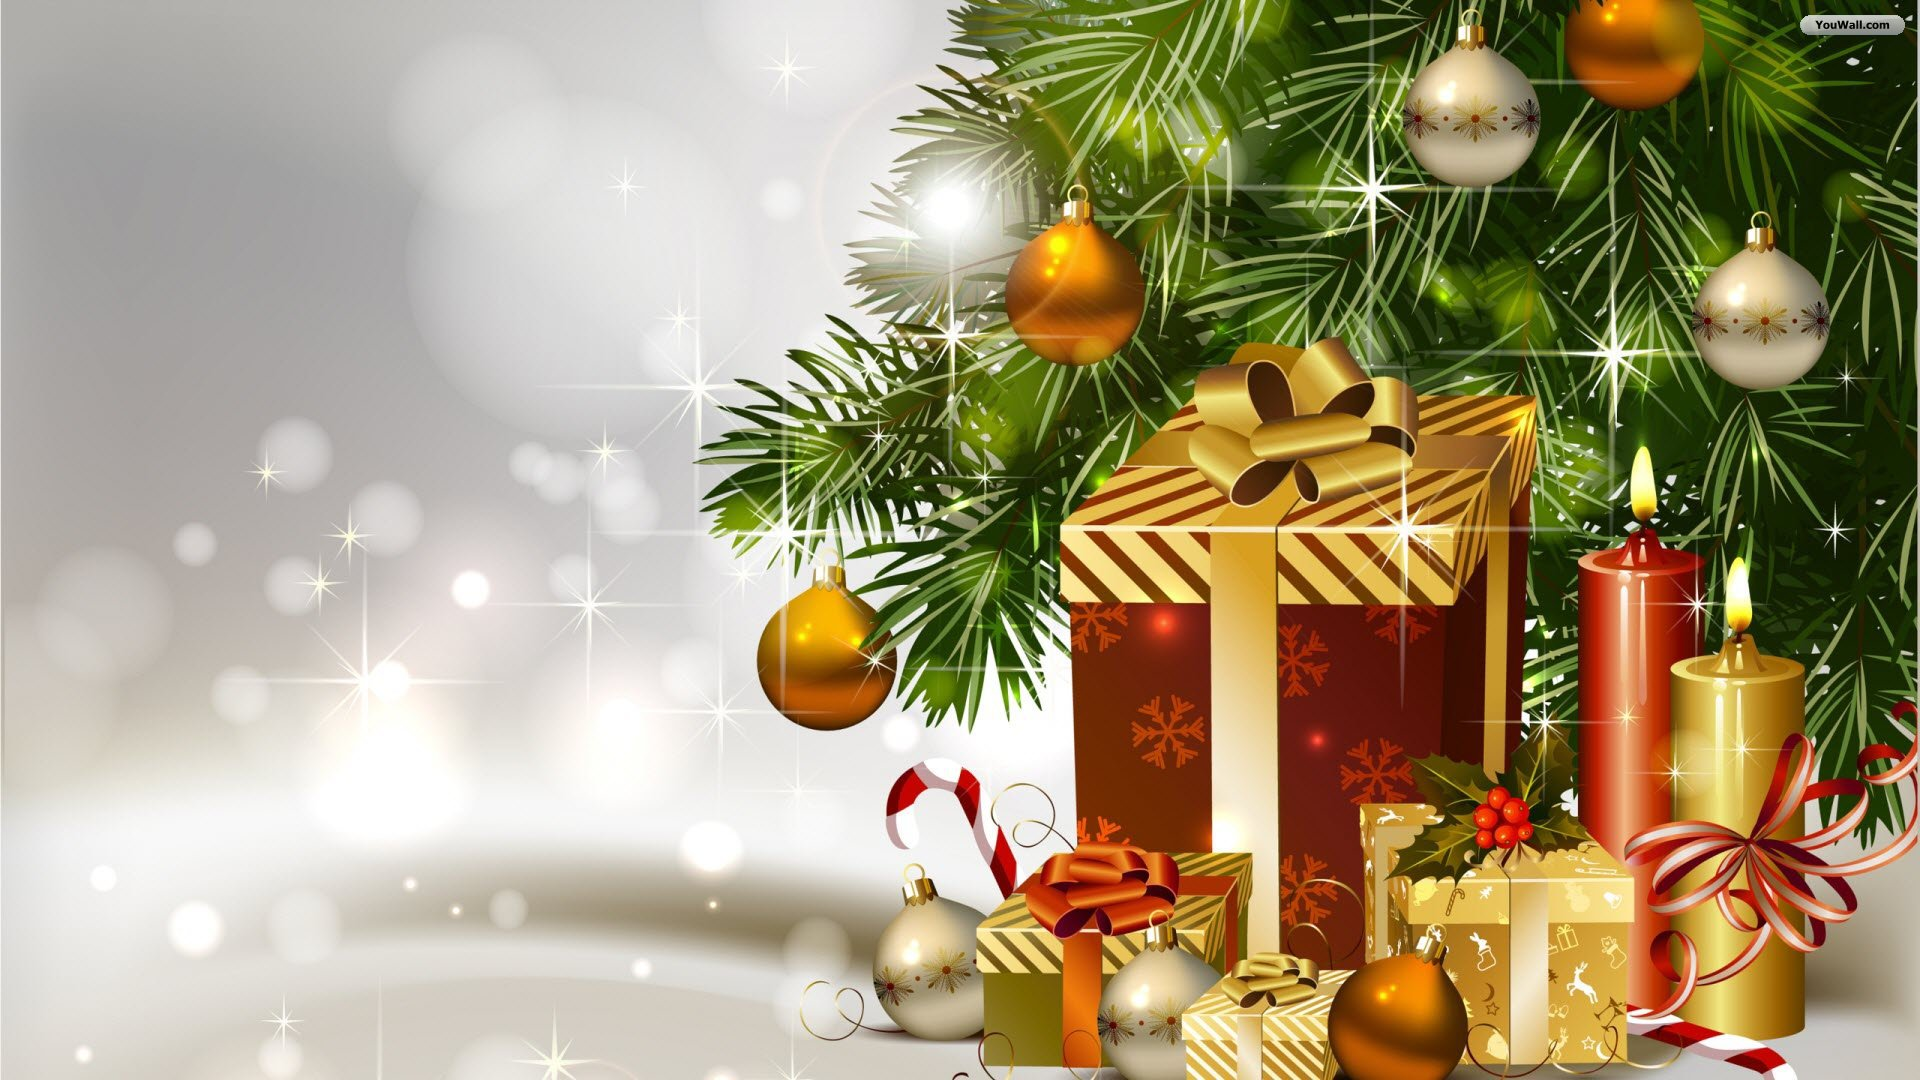 New_Year_wallpapers_Gifts_under_New_year_tree_050657_